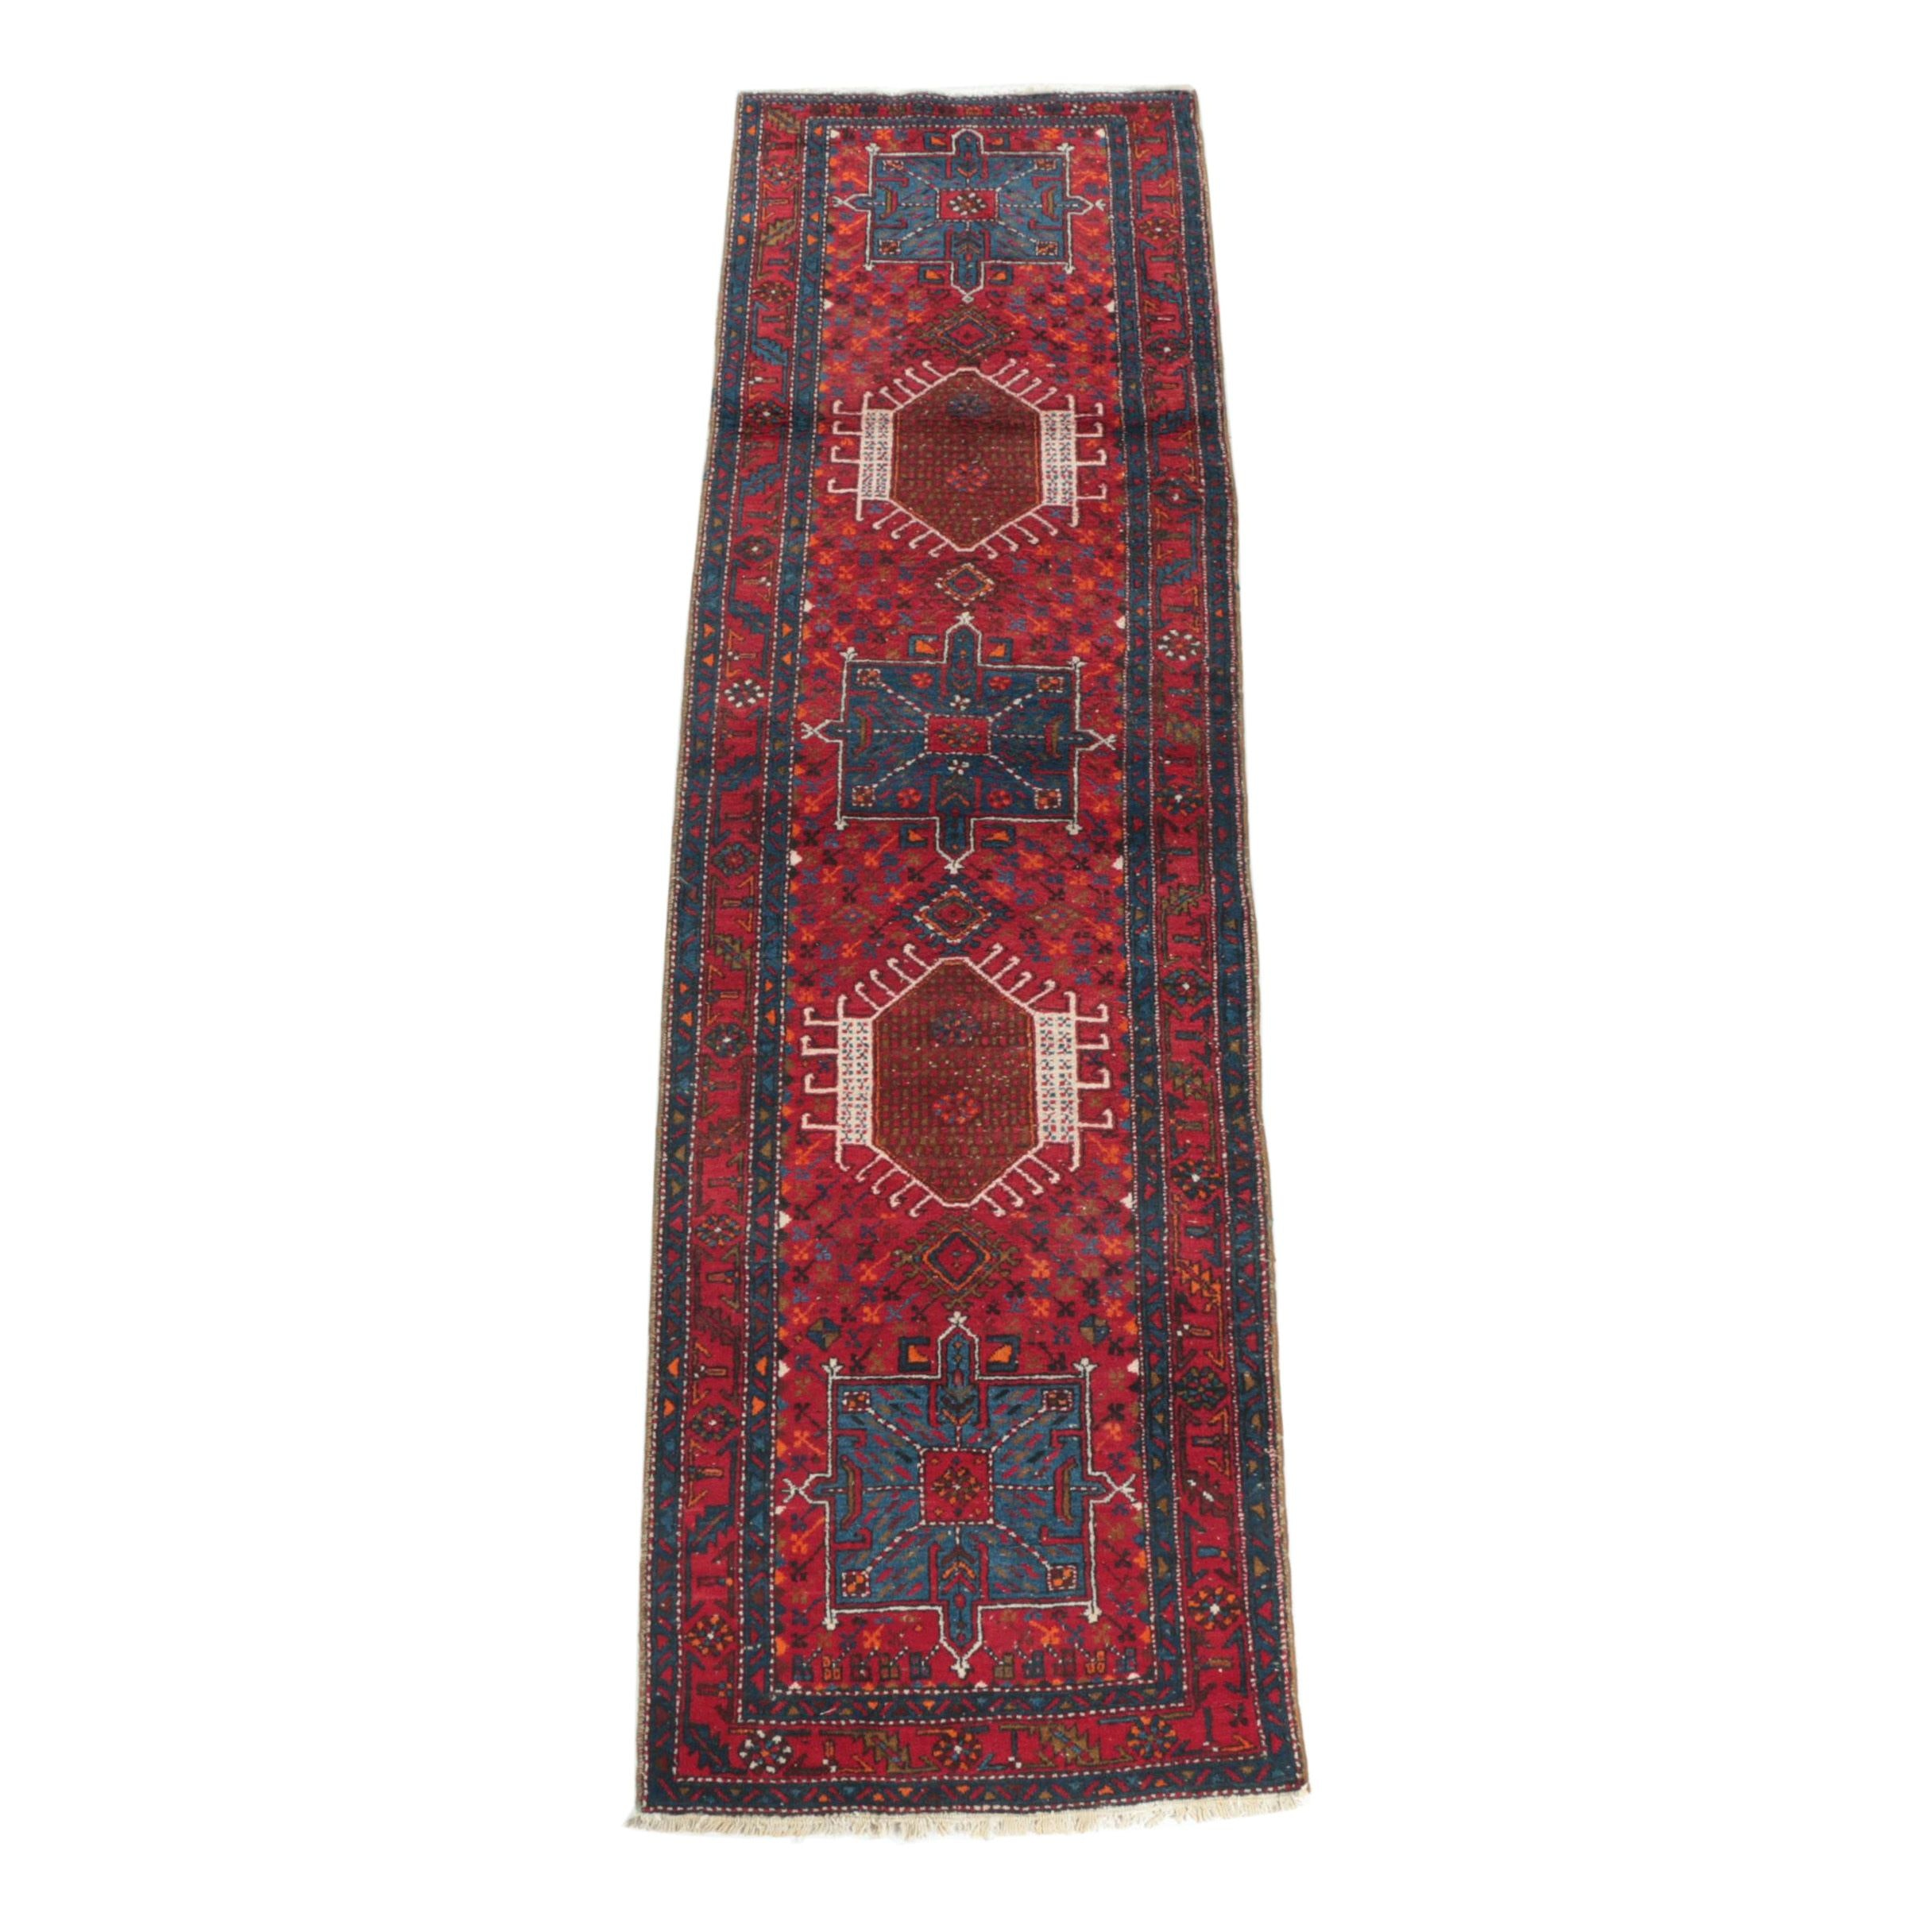 Hand-Knotted Persian Karaja Wool Carpet Runner